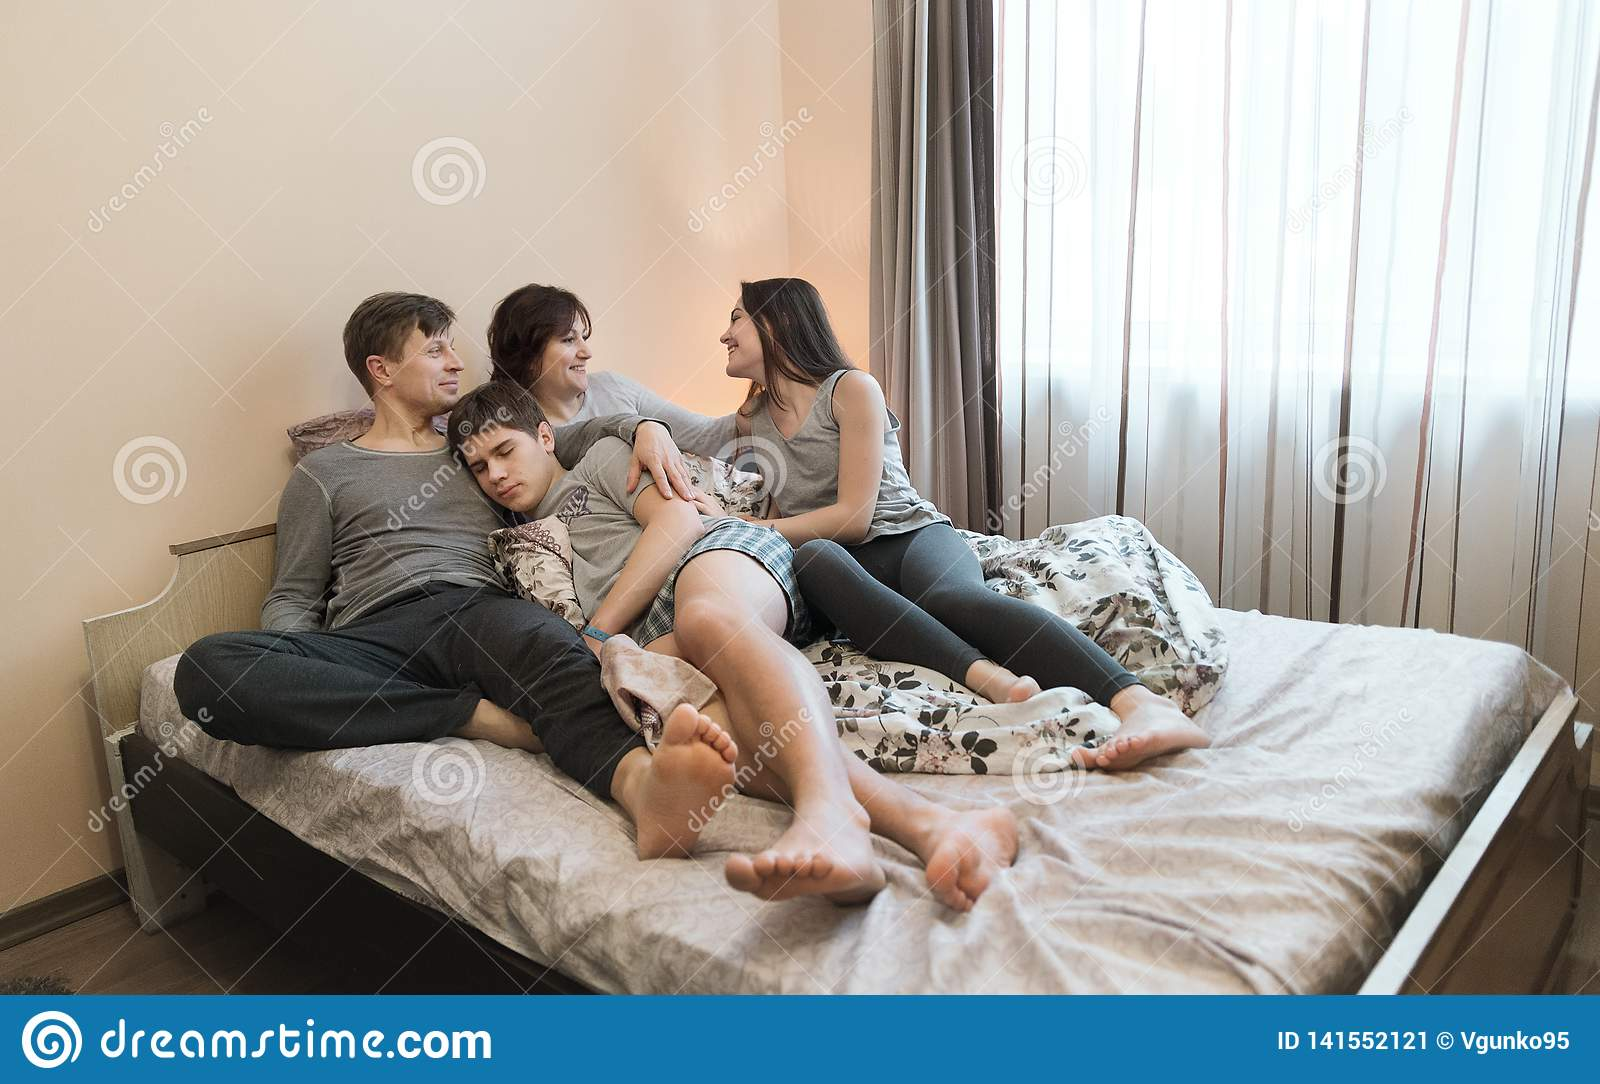 Family Relaxing Together In Bedю Happy family concept